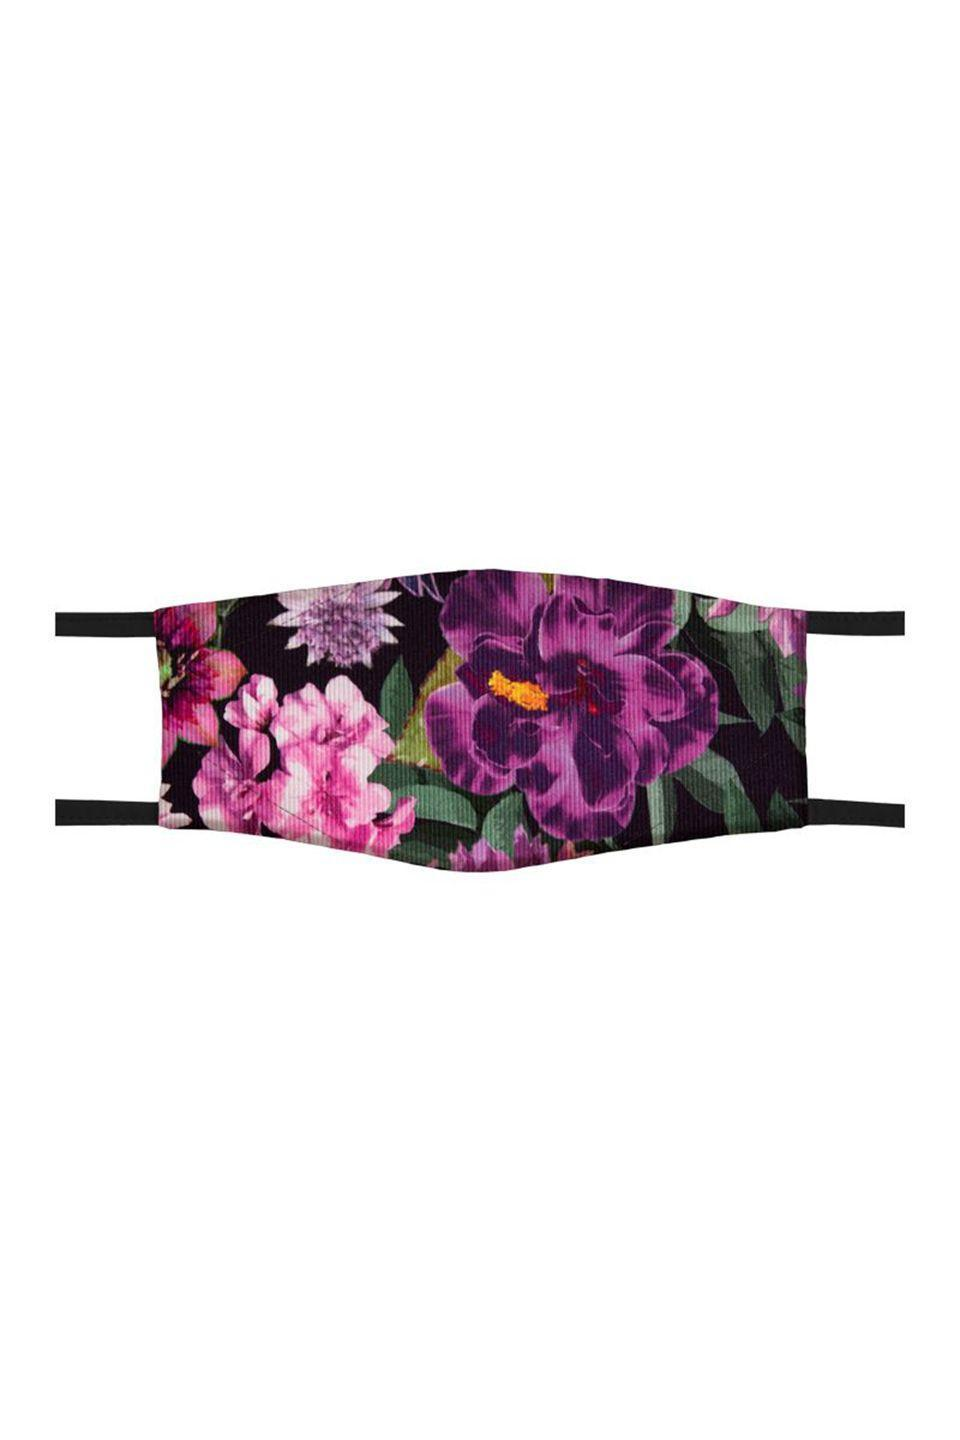 """<p><a class=""""link rapid-noclick-resp"""" href=""""https://www.marc-cain.com/en/Shop/Accessoires/Mouth-and-nose-mask/Mouth-and-nose-mask-1-alpine-rose.html"""" rel=""""nofollow noopener"""" target=""""_blank"""" data-ylk=""""slk:SHOP NOW"""">SHOP NOW</a></p><p>Marc Cain's bright and colourful masks are some of the prettiest available; the brand is also donating €5 to the German Red Cross with every sale. </p><p>£25, <a href=""""https://www.marc-cain.com/en/Shop/Accessoires/Mouth-and-nose-mask/Mouth-and-nose-mask-1-alpine-rose.html"""" rel=""""nofollow noopener"""" target=""""_blank"""" data-ylk=""""slk:Marc Cain"""" class=""""link rapid-noclick-resp"""">Marc Cain </a></p>"""